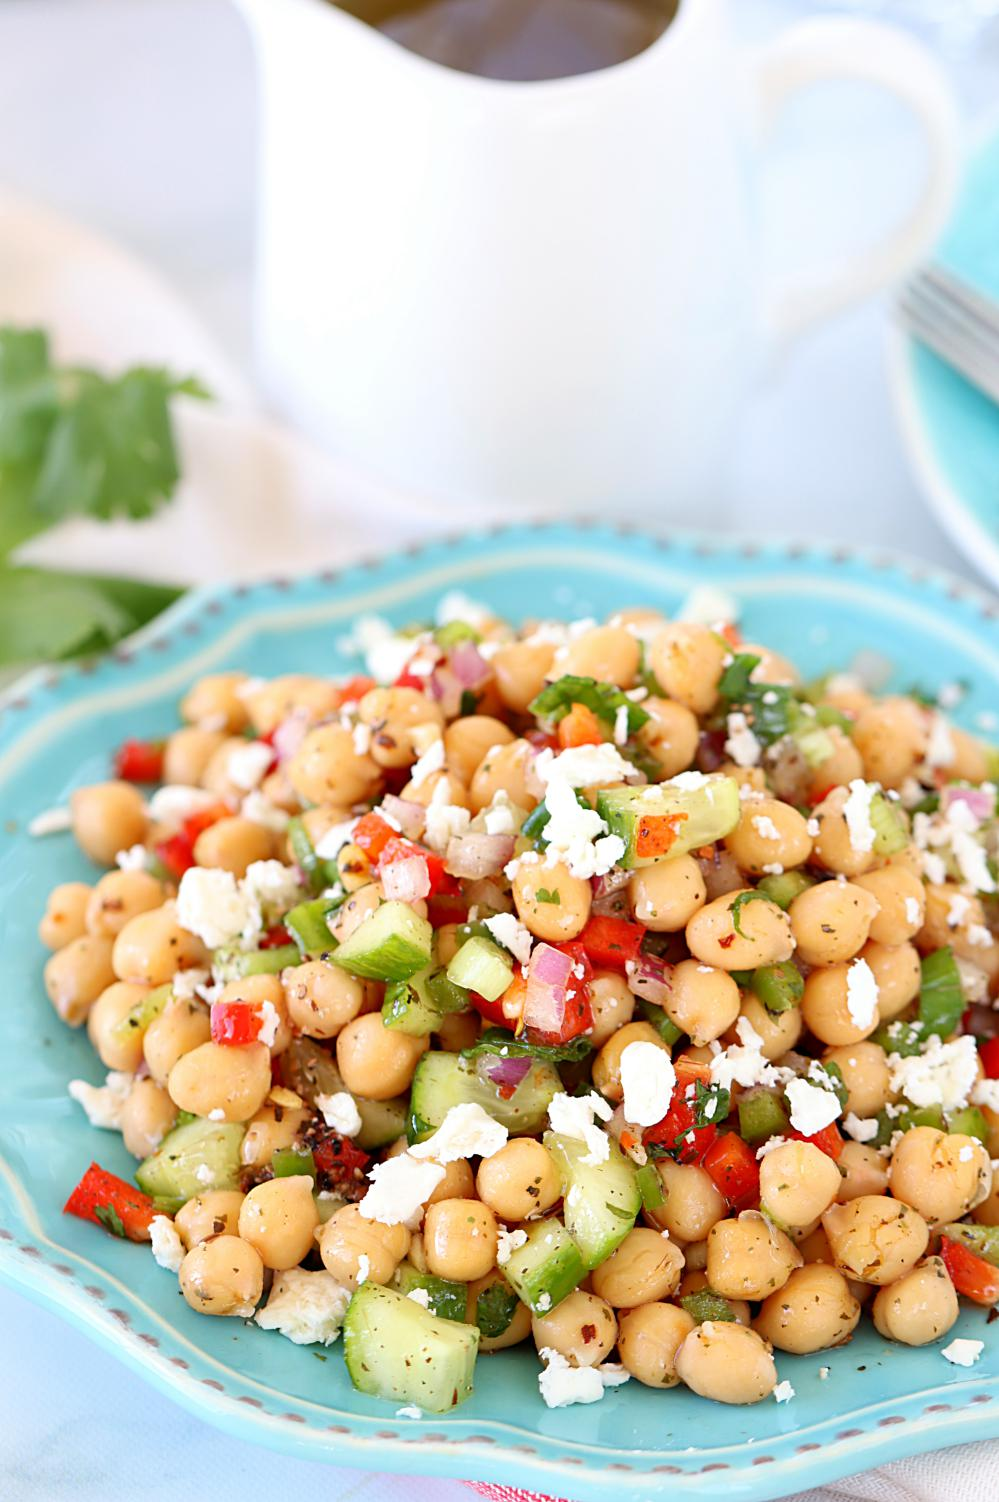 Vegan Chickpea Salad. Here are 25 delicious vegan salads that will fill you up andhave a healthy source of protein. Show your friends that not 'all vegans eat is rabbit food' with these unique and delicious twists on salads #vegan